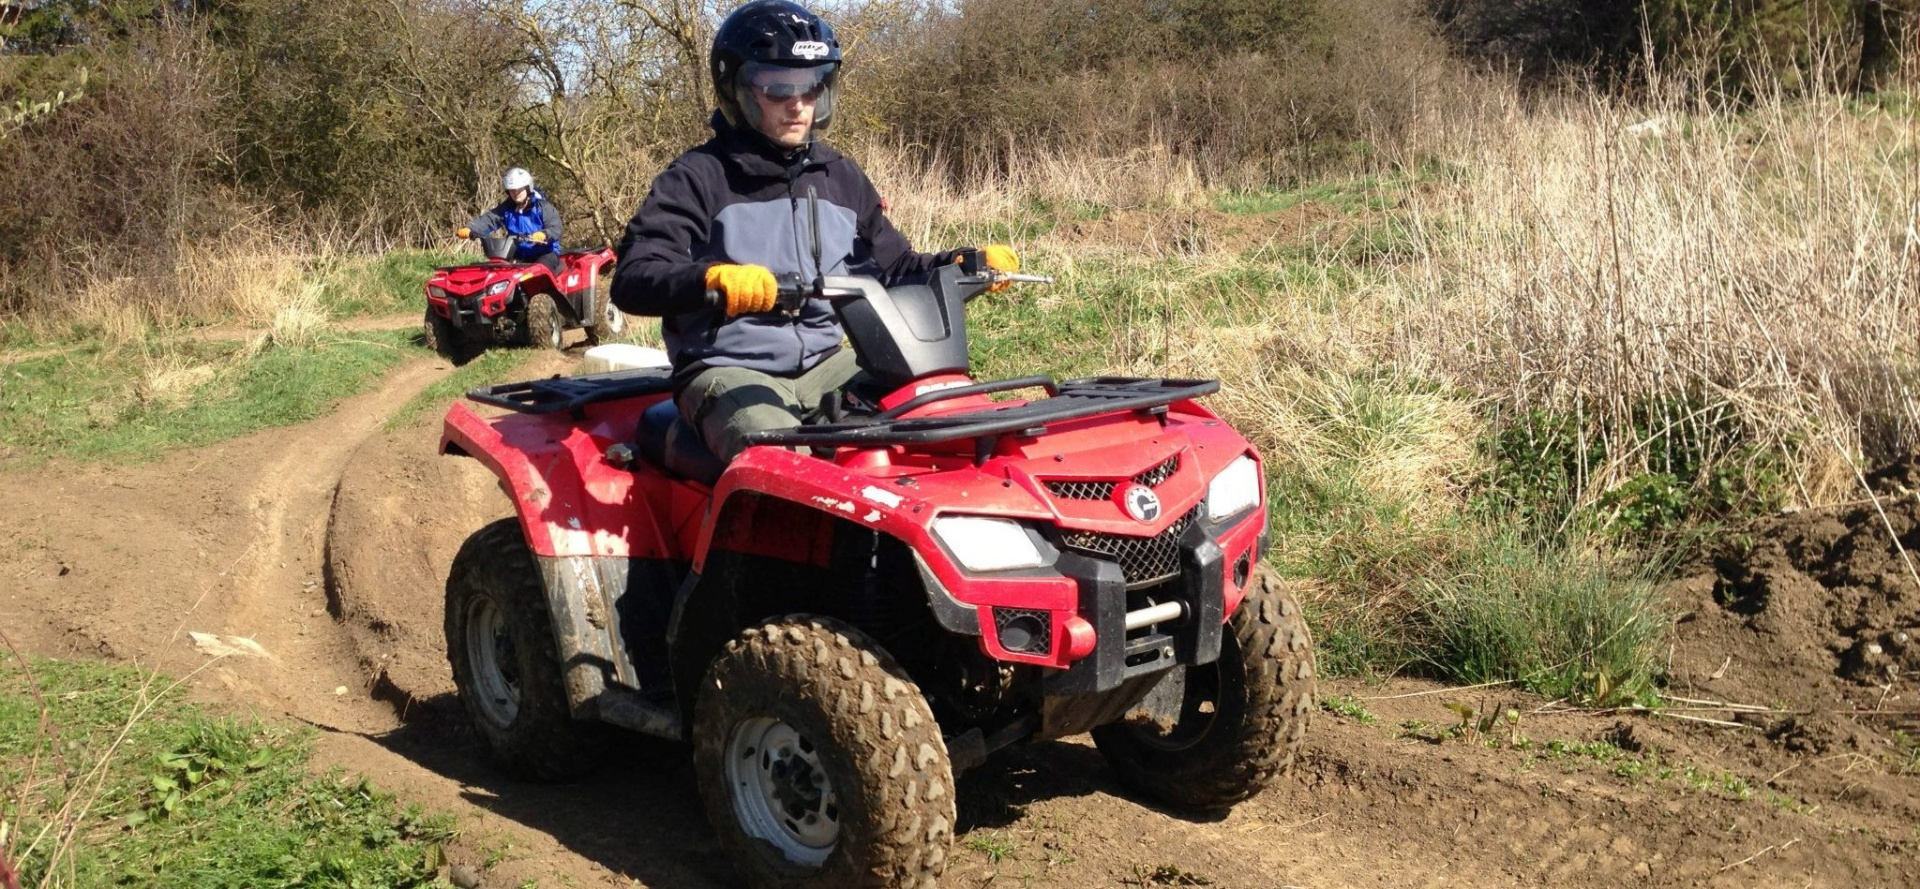 2 Hour Quad Biking Trek North Yorkshire-5